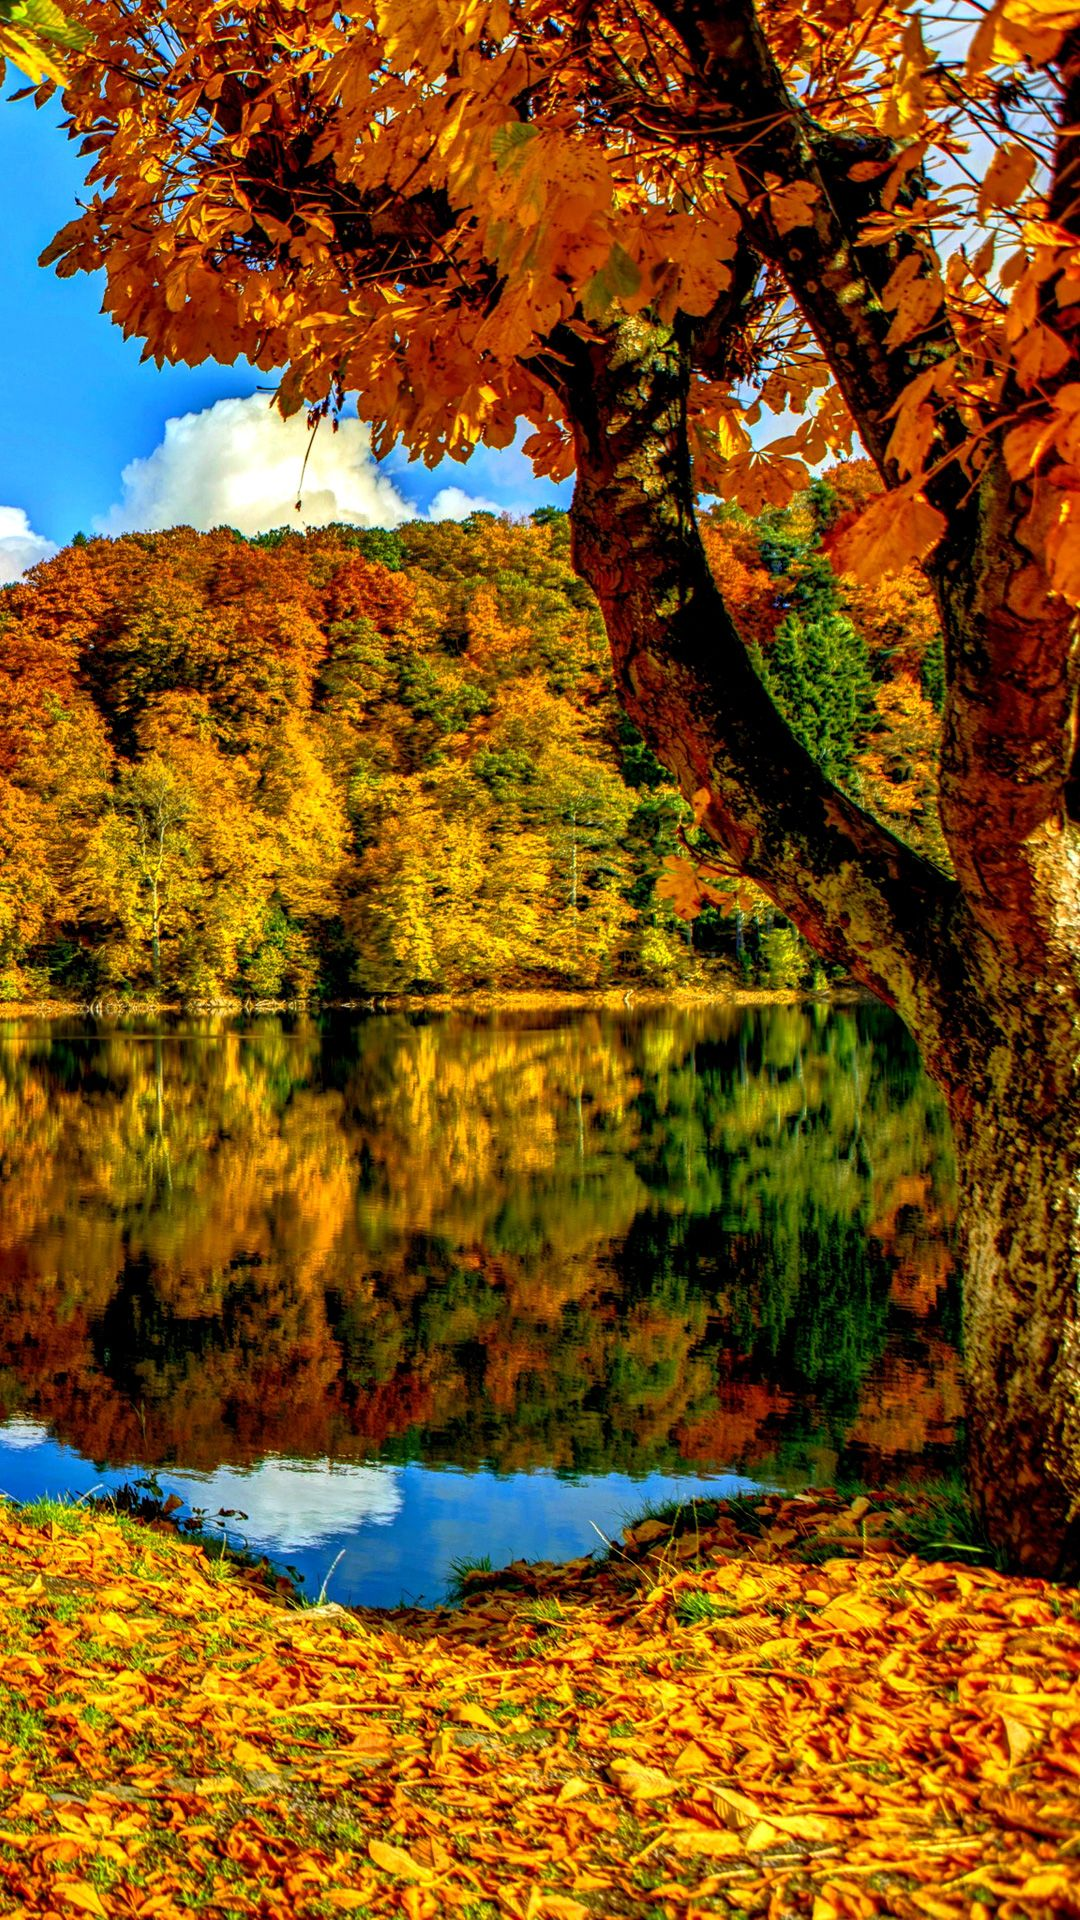 Red Autumn Trees Wallpaper Iphone Bing Images Tree Wallpaper Iphone New Wallpaper Iphone Autumn Scenery